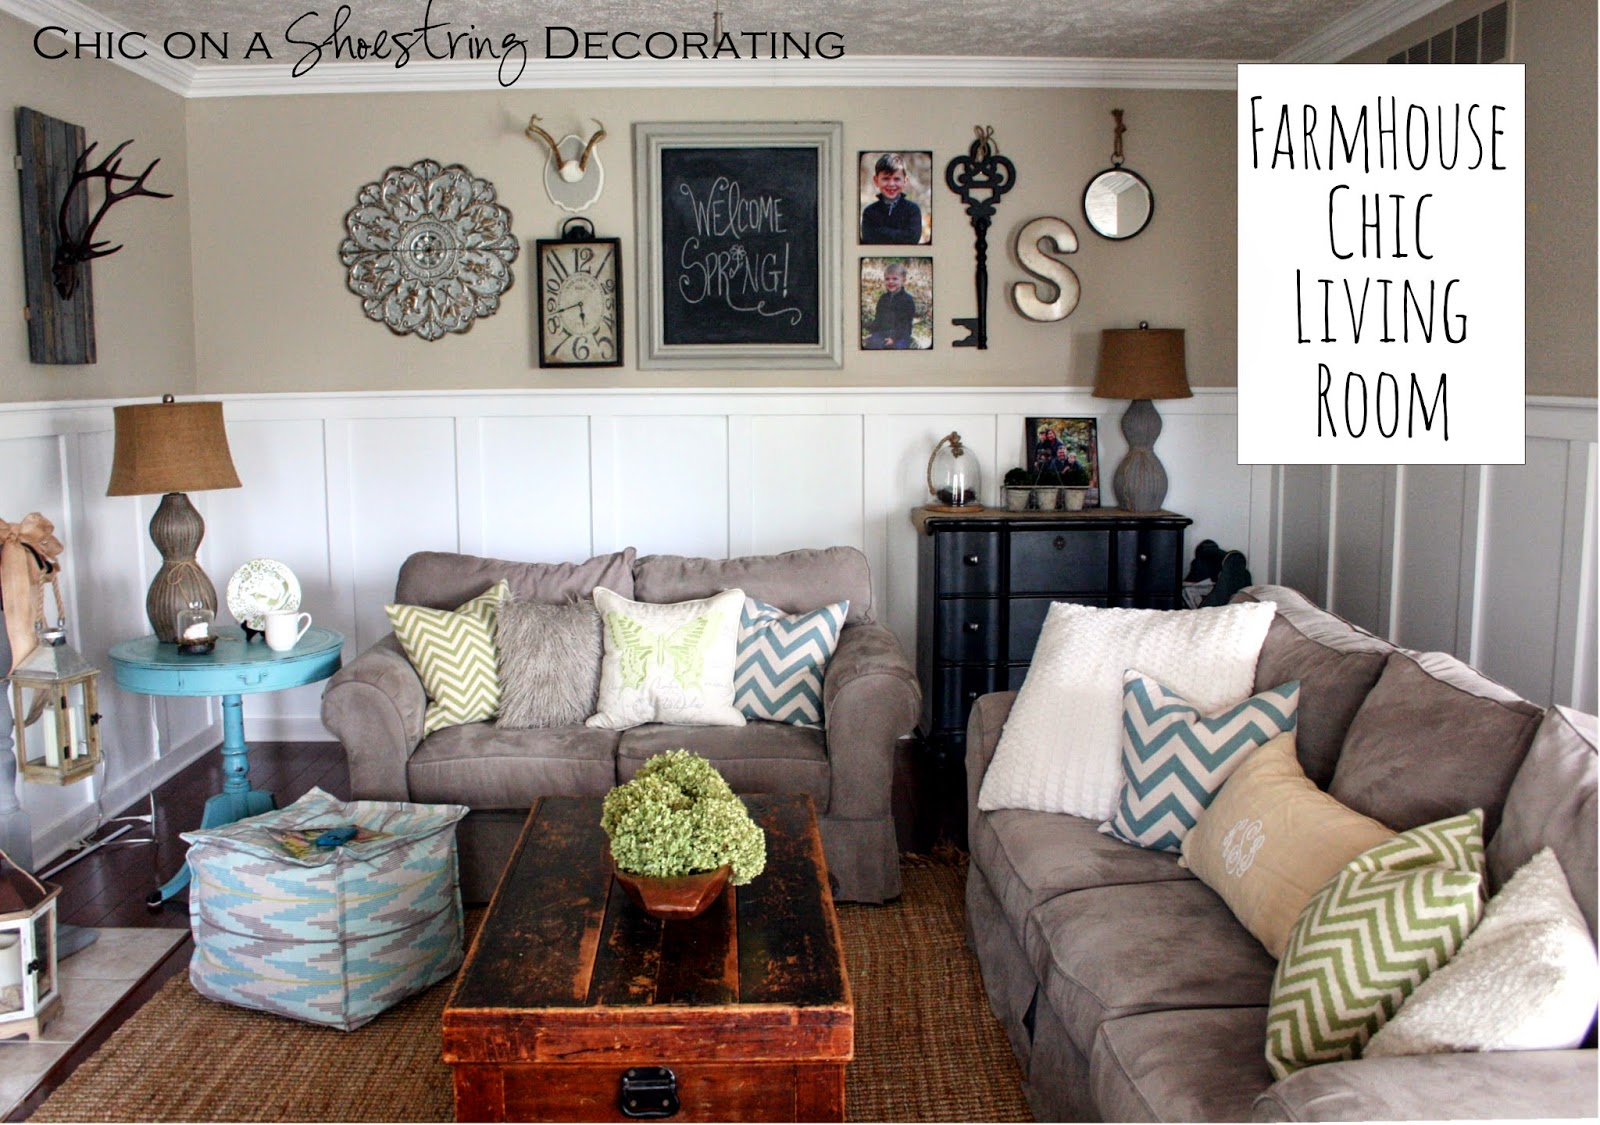 Chic on a shoestring decorating my farmhouse chic living room reveal Design my living room